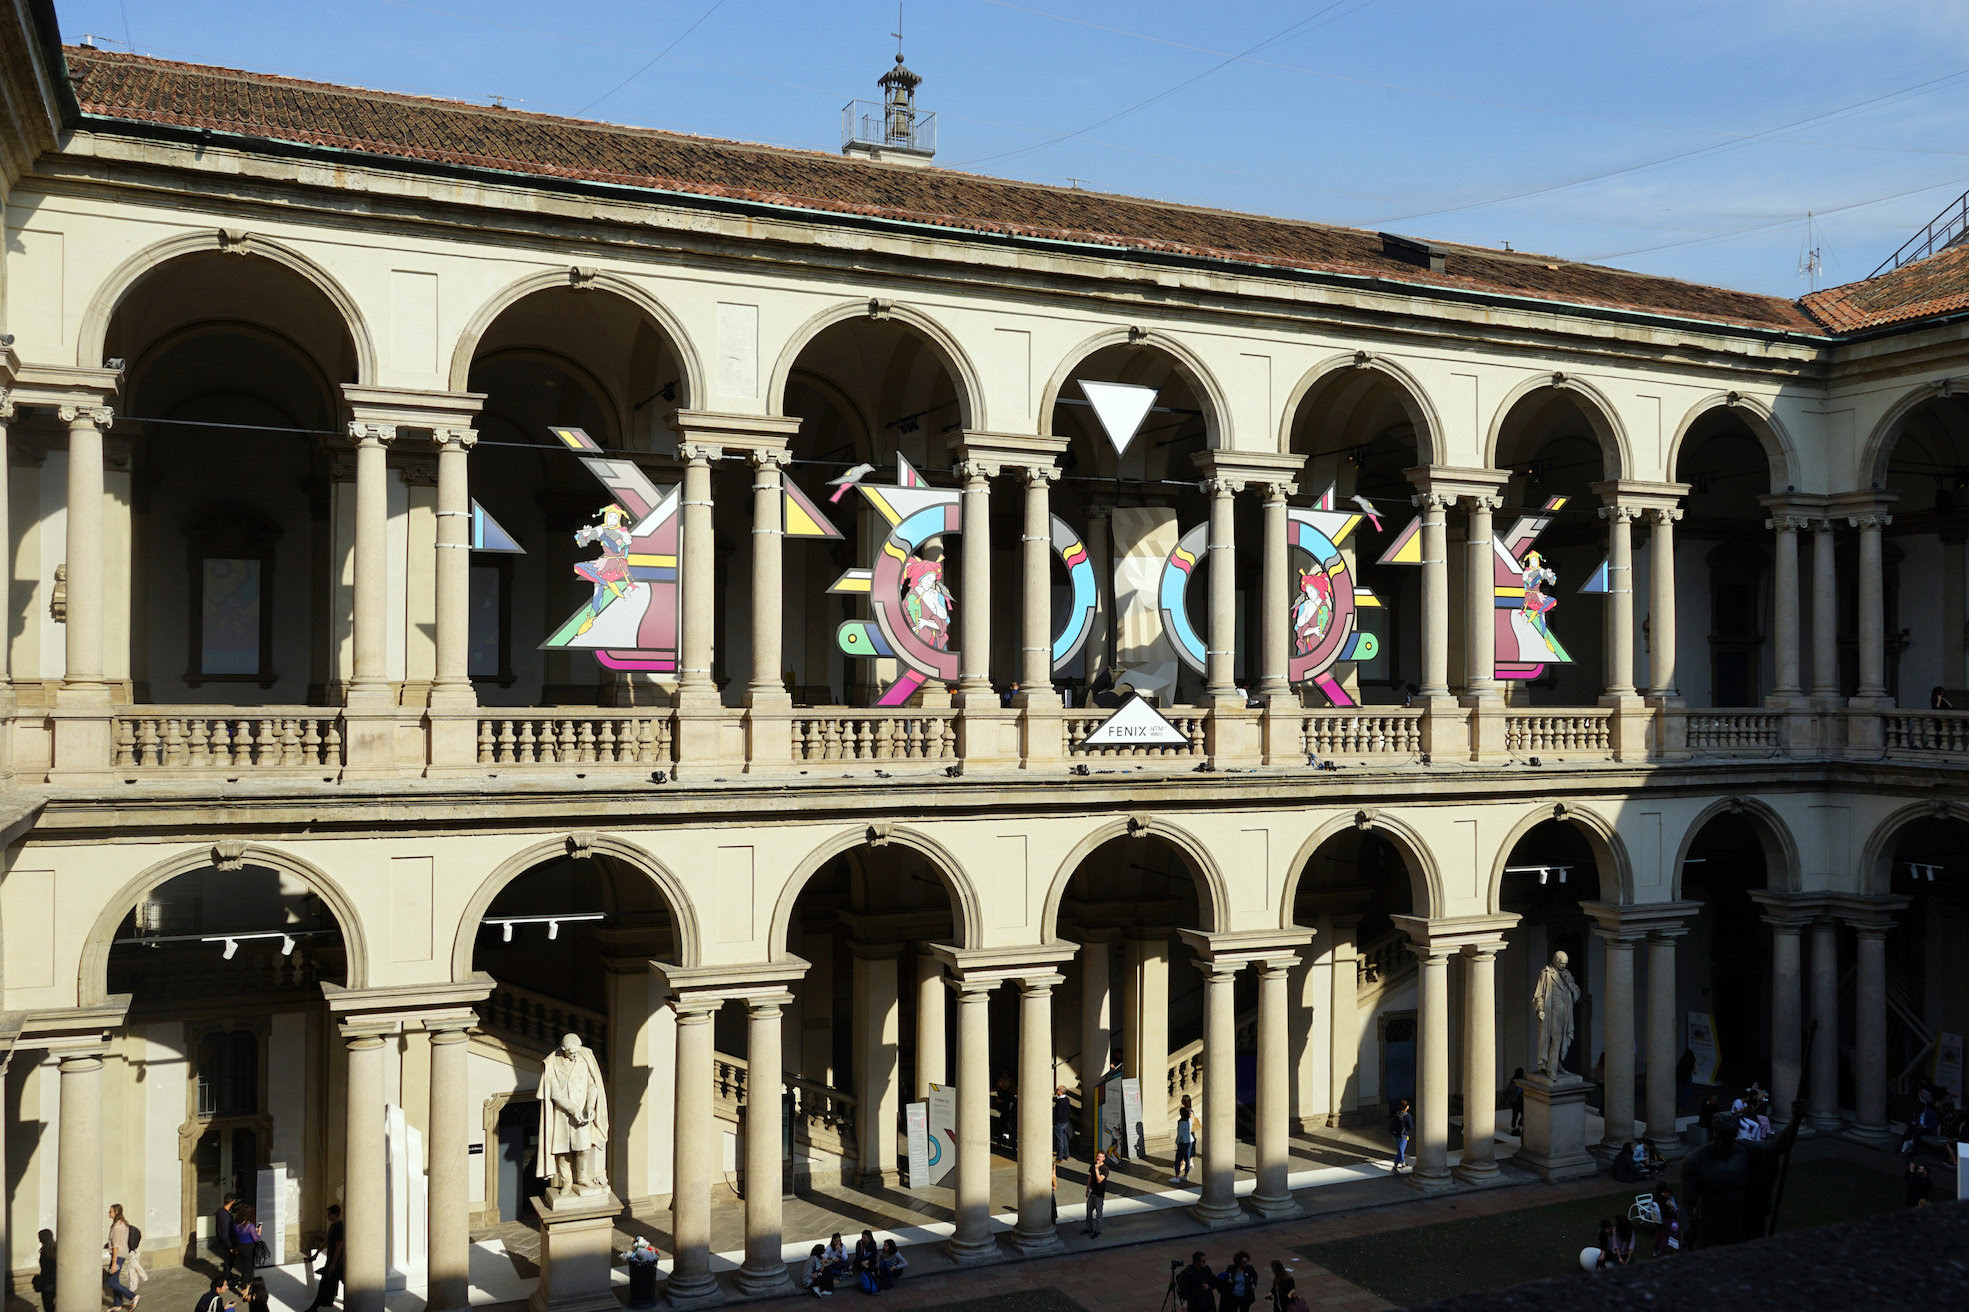 MILAN DESIGN WEEK: FENIX NTM- ALCHEMYX AT THE PINACOTECA DI BRERA